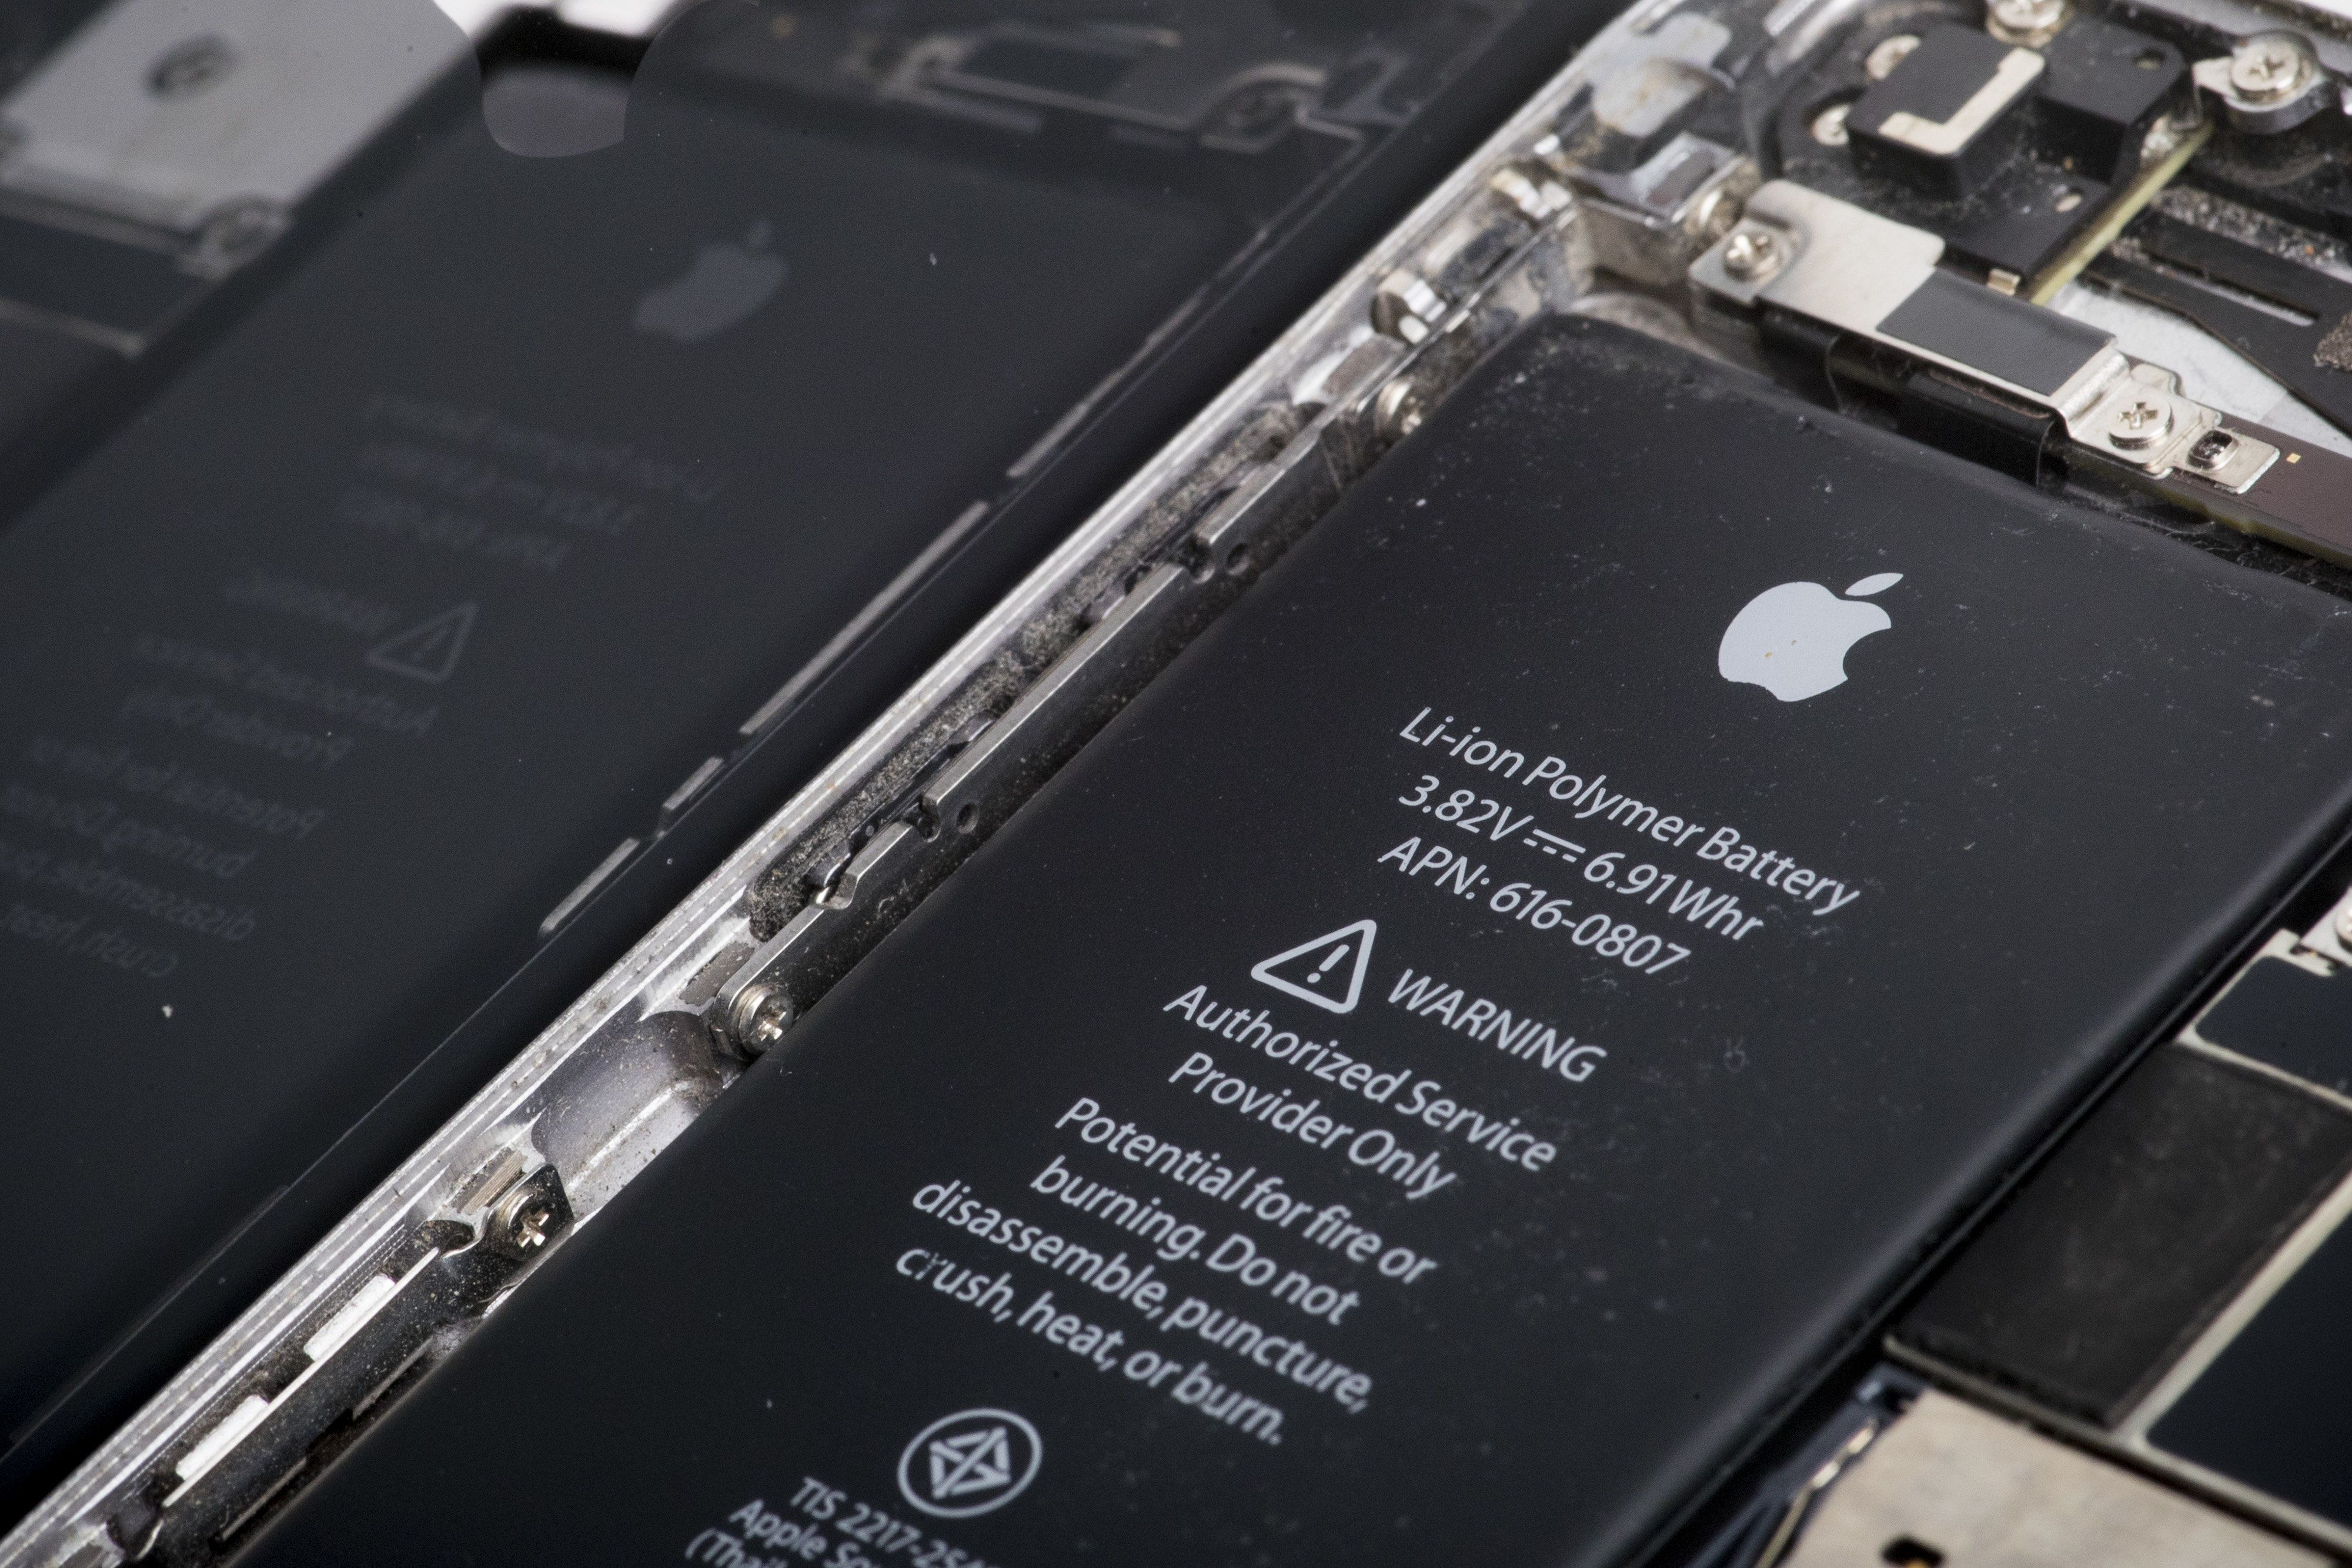 Touchless Technology Could Be on the Horizon For Apple iPhones